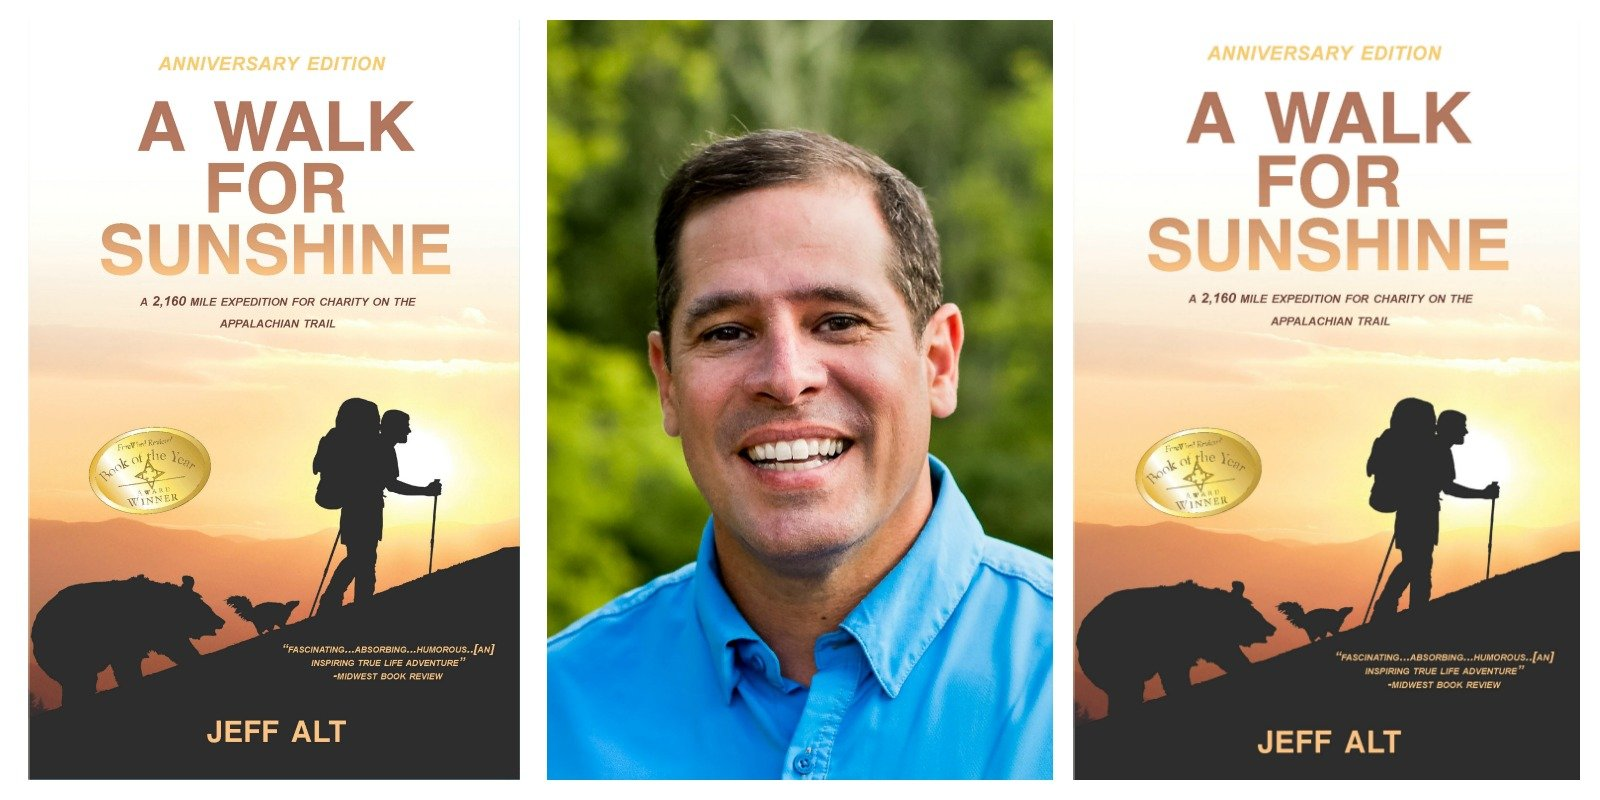 A Review of A Walk for Sunshine by Jeff Alt